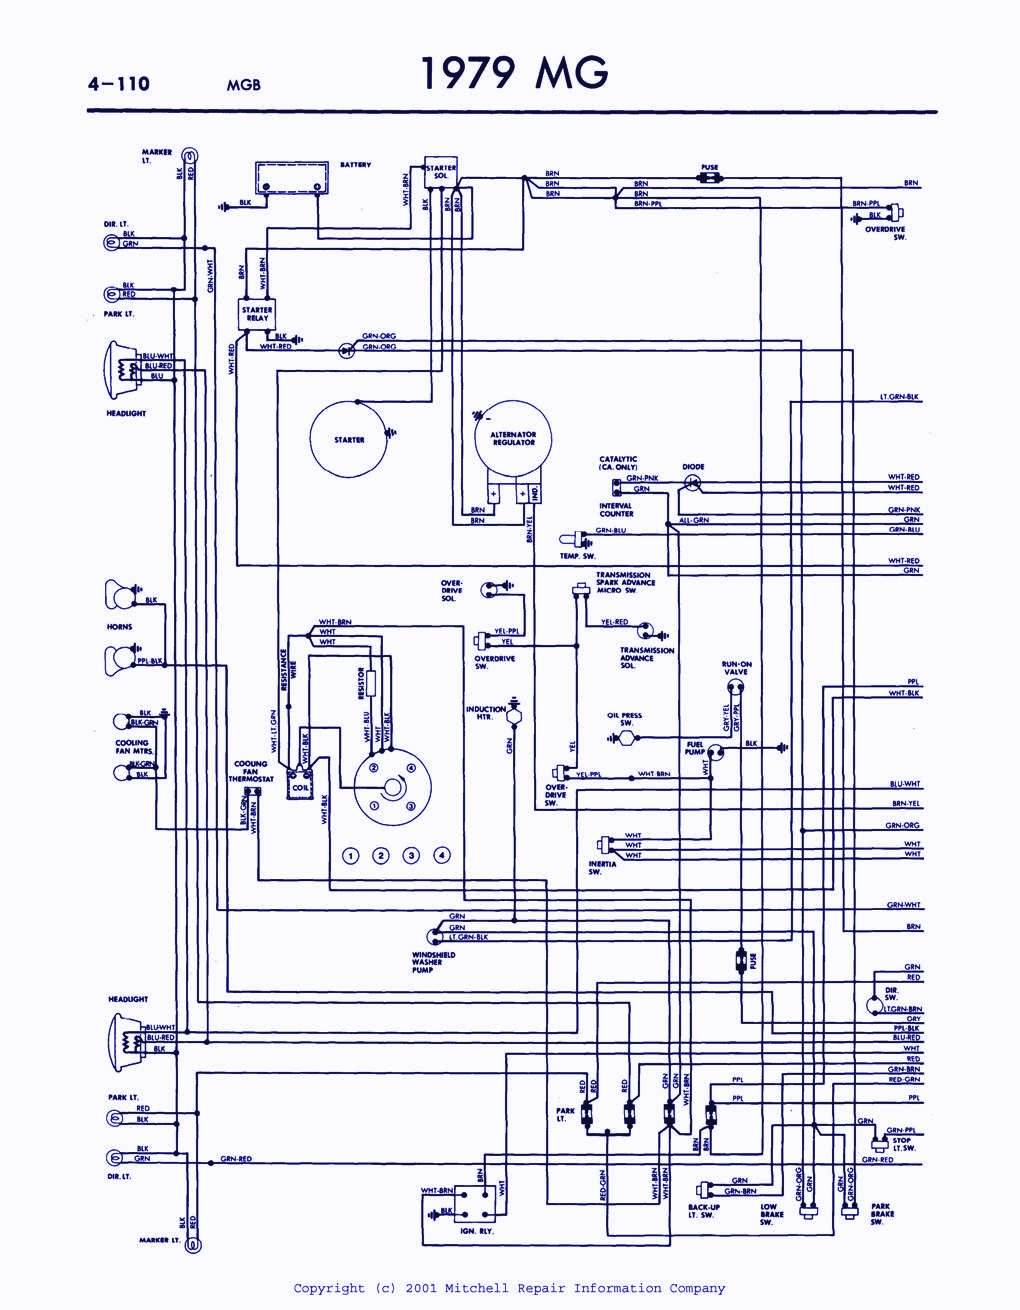 Remarkable Bentley Wiring Diagrams Mg Td Get Free Image About Wiring Diagram Wiring Cloud Hisonuggs Outletorg